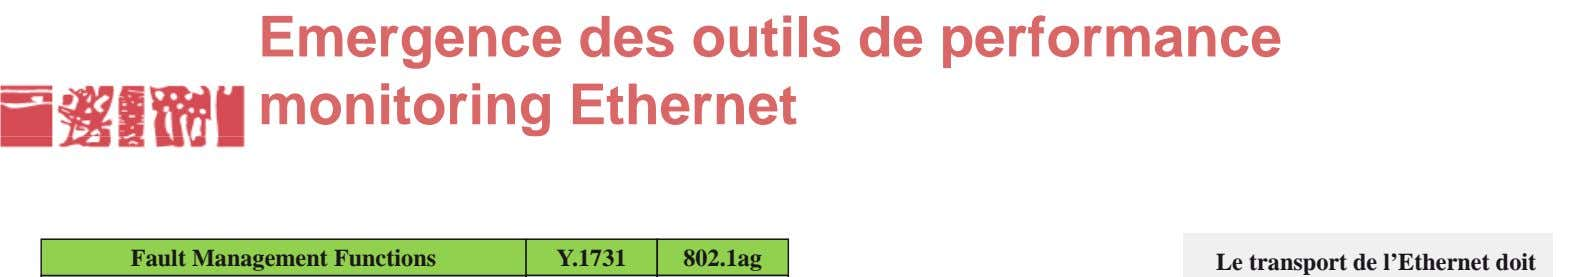 Emergence des outils de performance monitoring Ethernet Fault Management Functions Y.1731 802.1ag